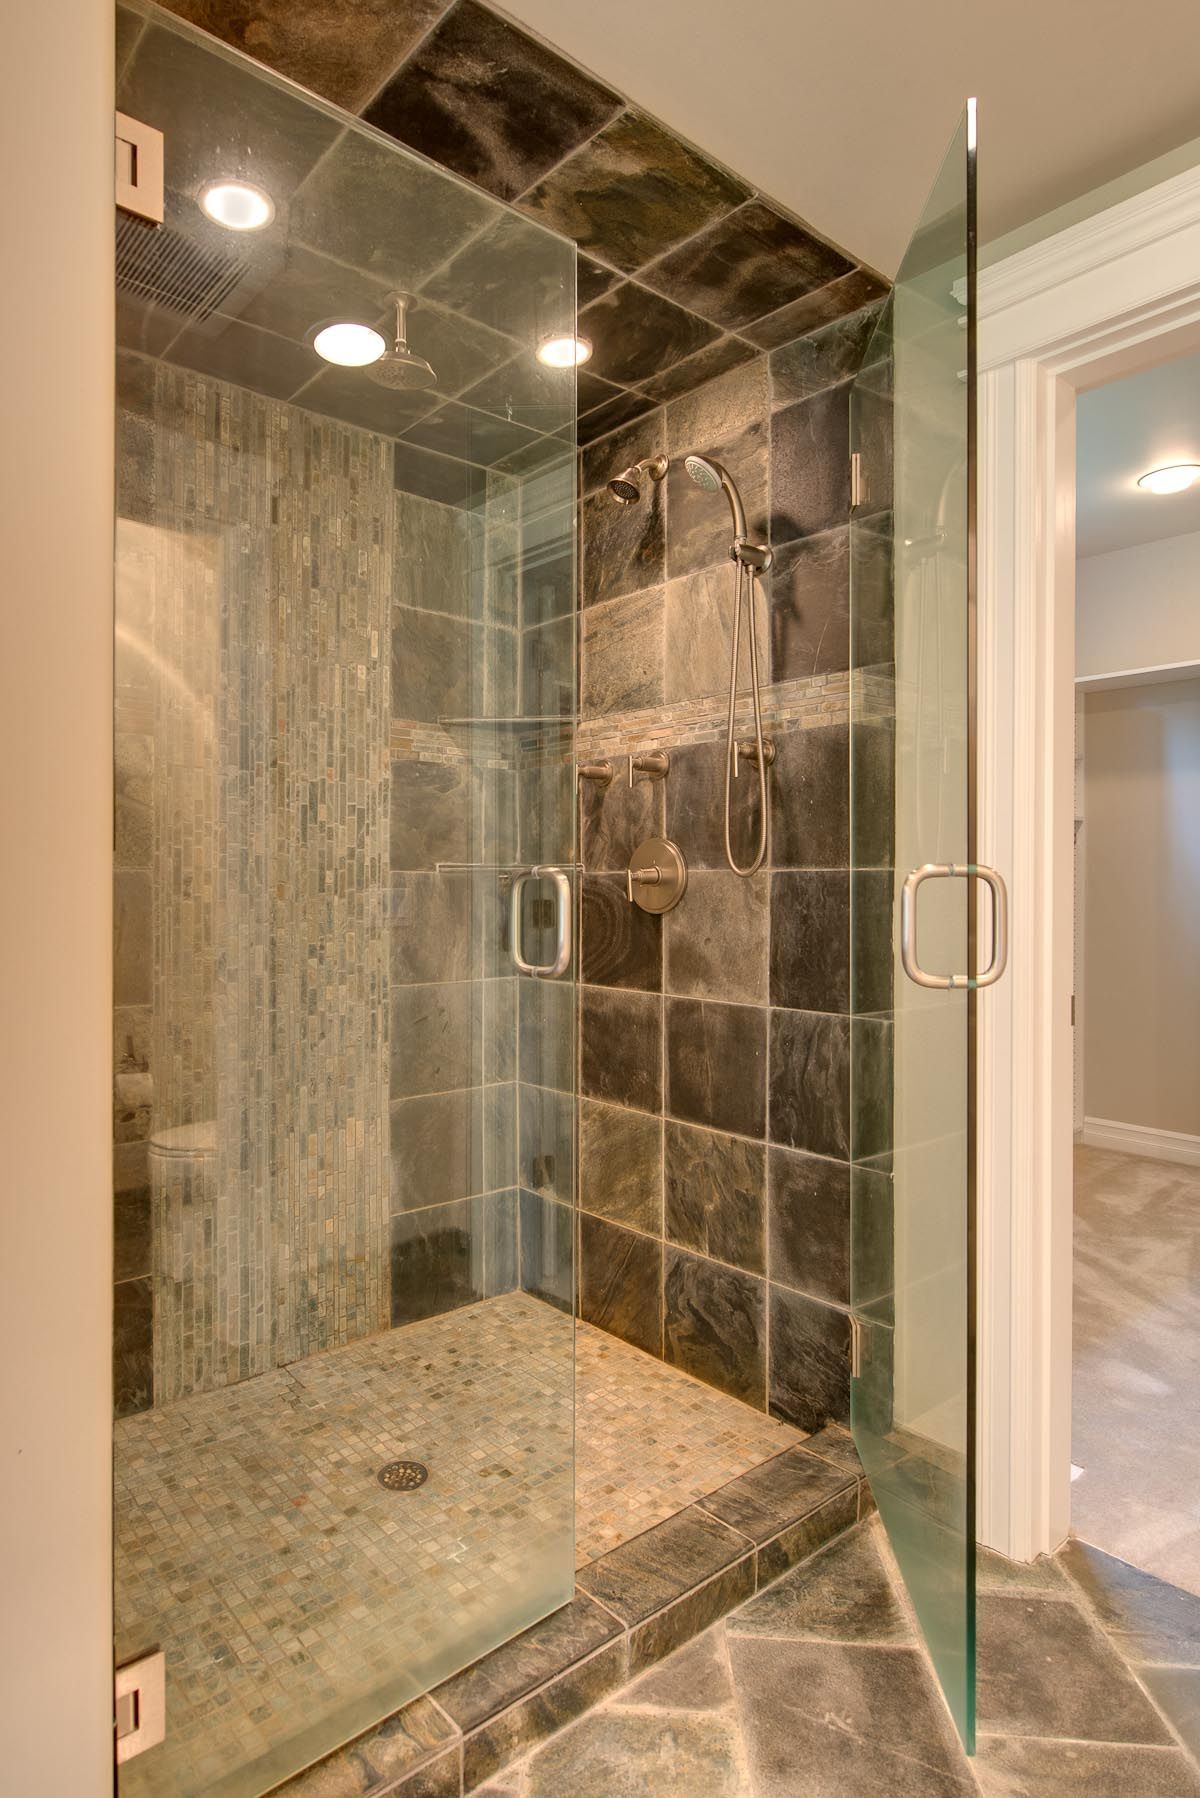 Bathroom, Monumental Mosaic Bathroom Tiles Ideas With Unique Design For The  Shower Tray And As Accent On The Shower Wall Also Large Natural Stone Tiles  For ... Part 48